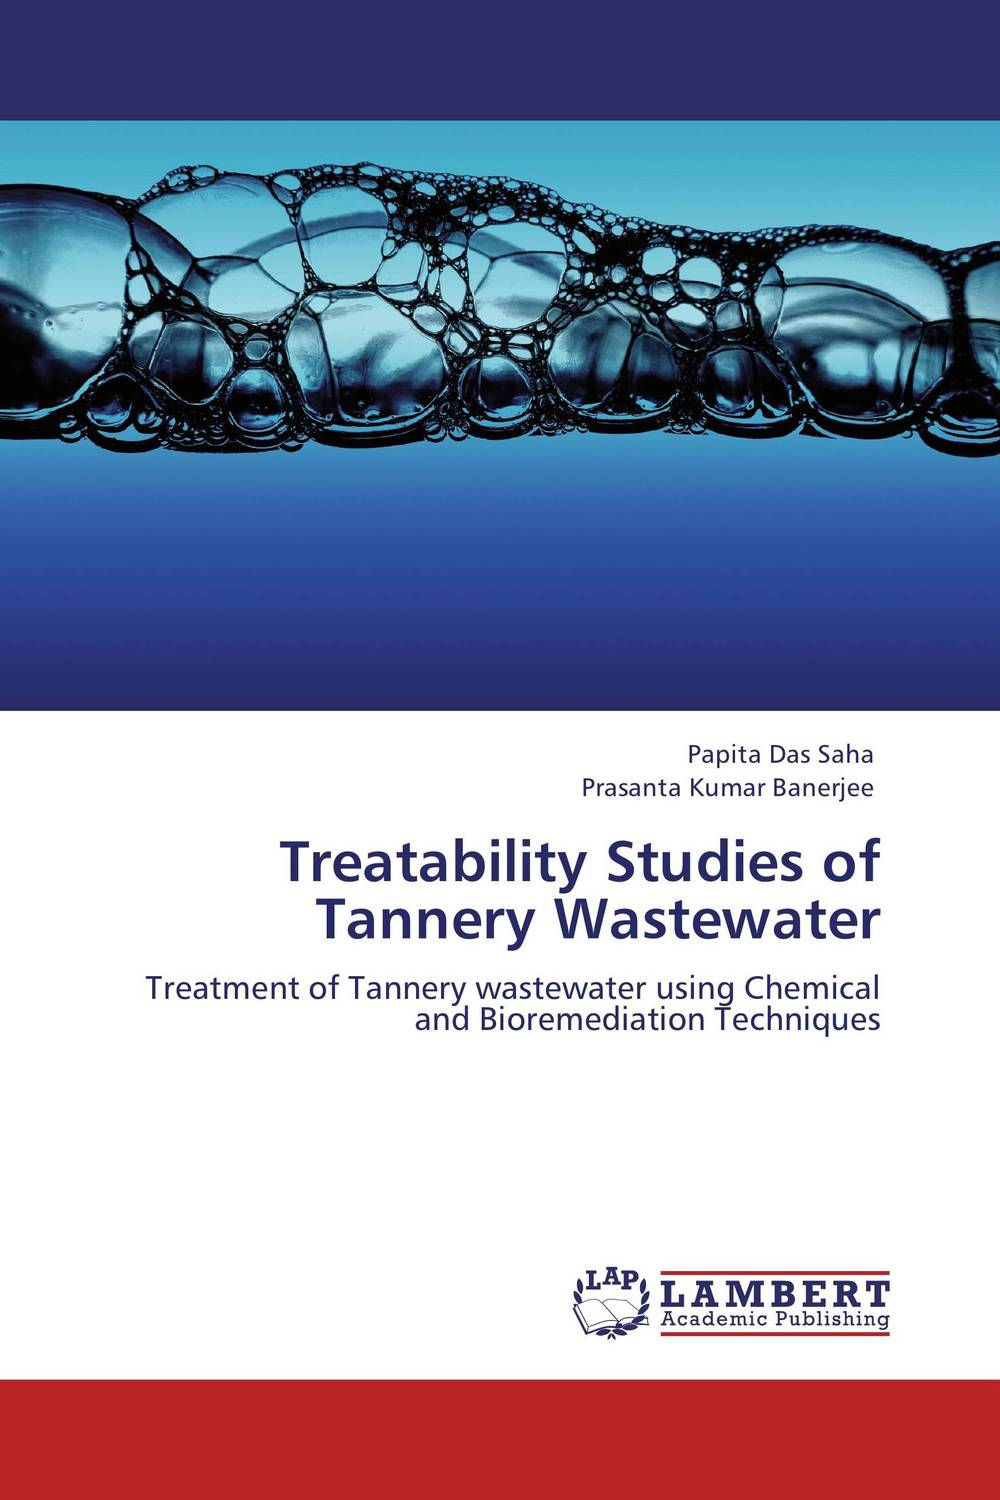 Treatability Studies of Tannery Wastewater antimicrobial contaminant elimination from water and waste sludge